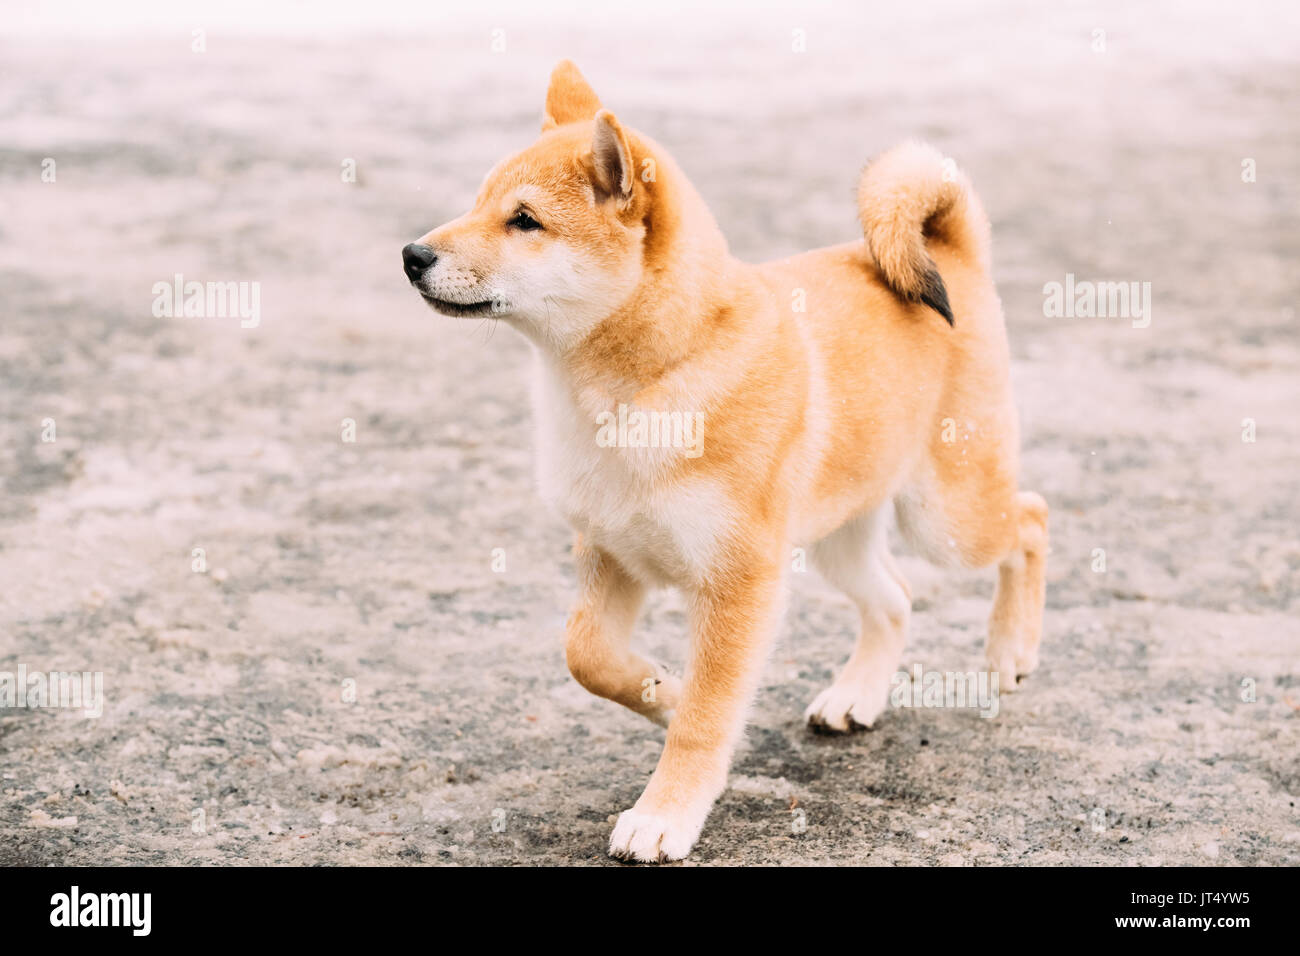 Young Japanese Small Size Shiba Inu Dog Play Outdoor At Winter Day. - Stock Image